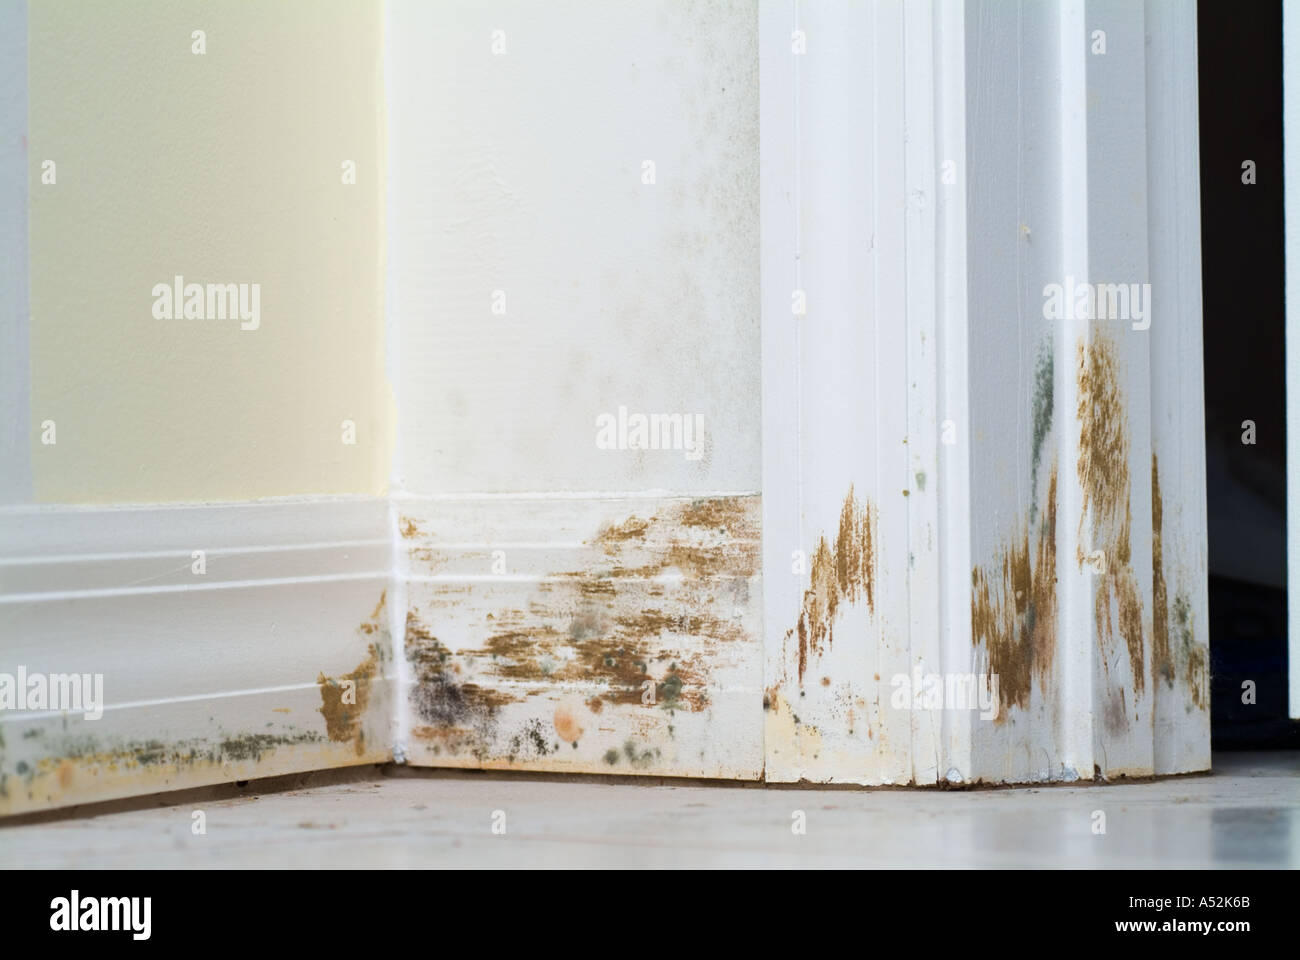 Mold mildew on inside wall along baseboard molding storm damage water stock photo royalty free for Water damage baseboard bathroom